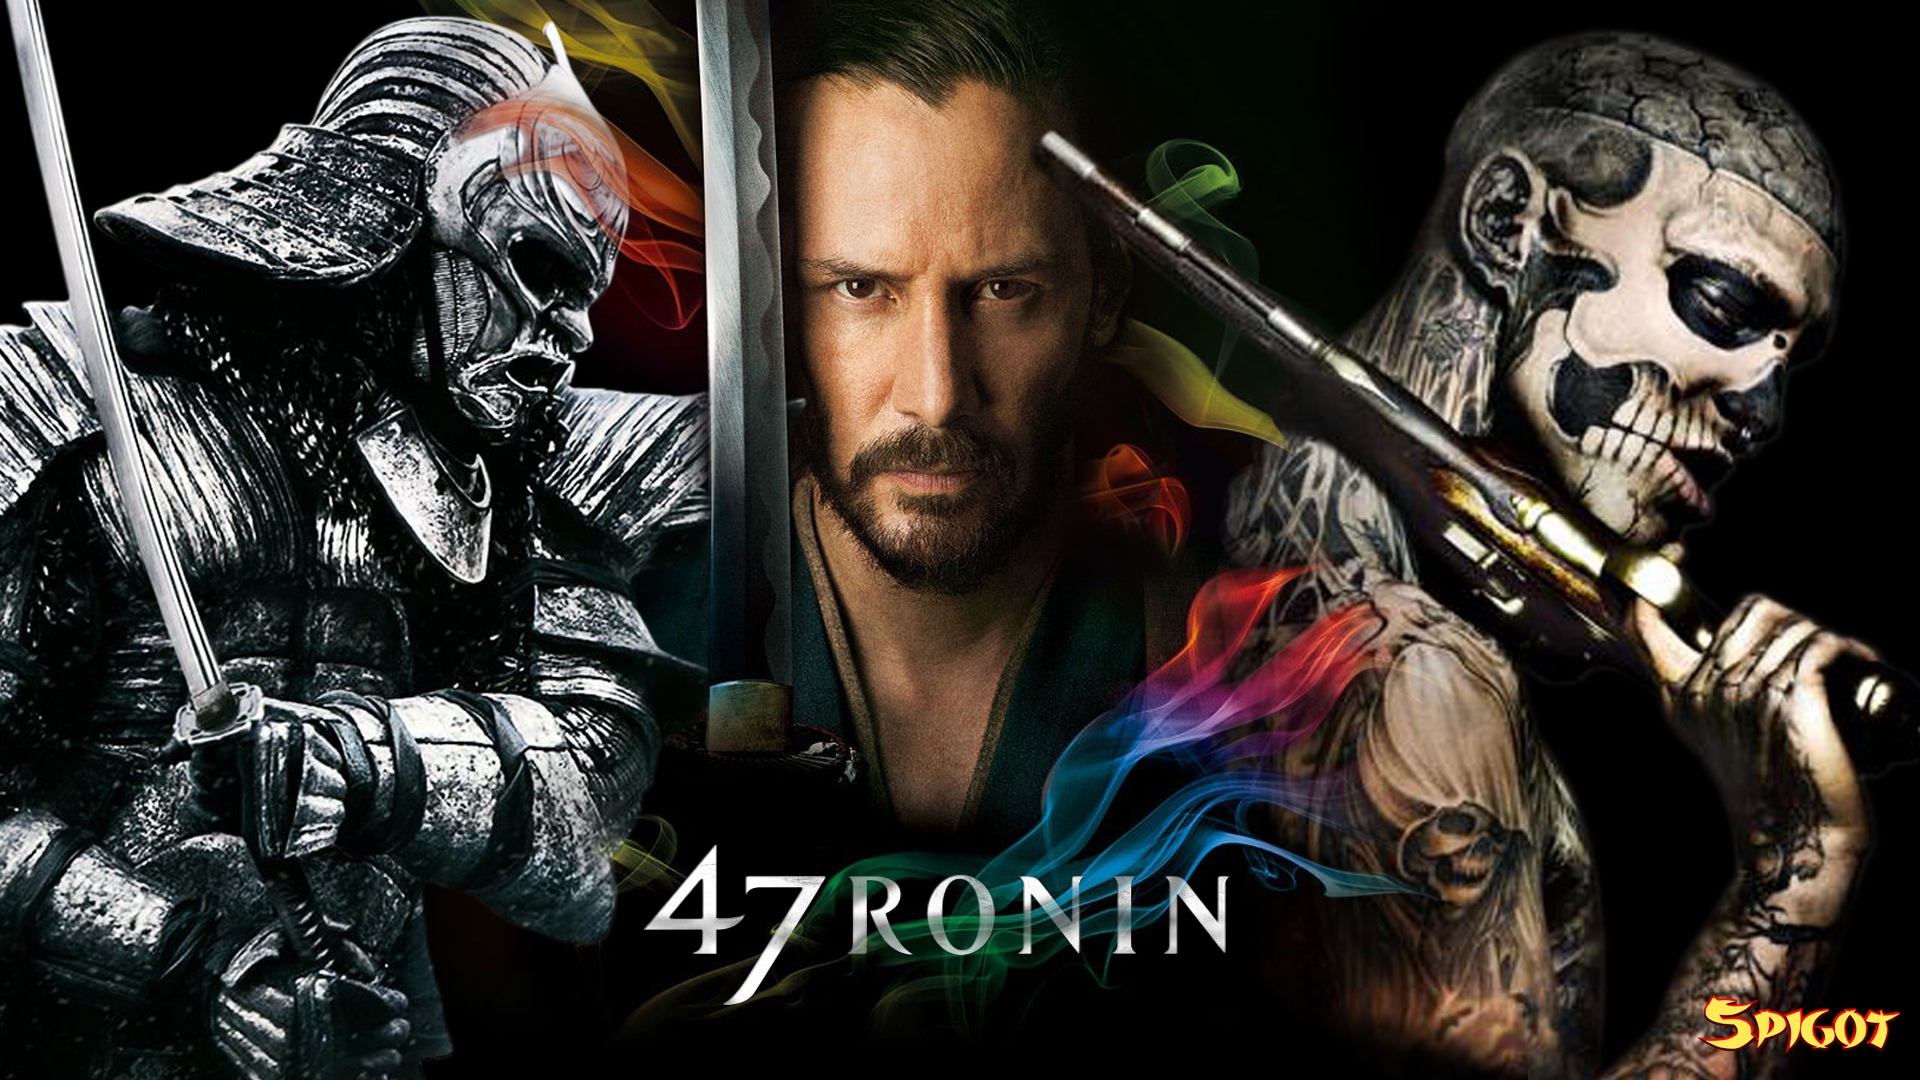 44 ronin full movie